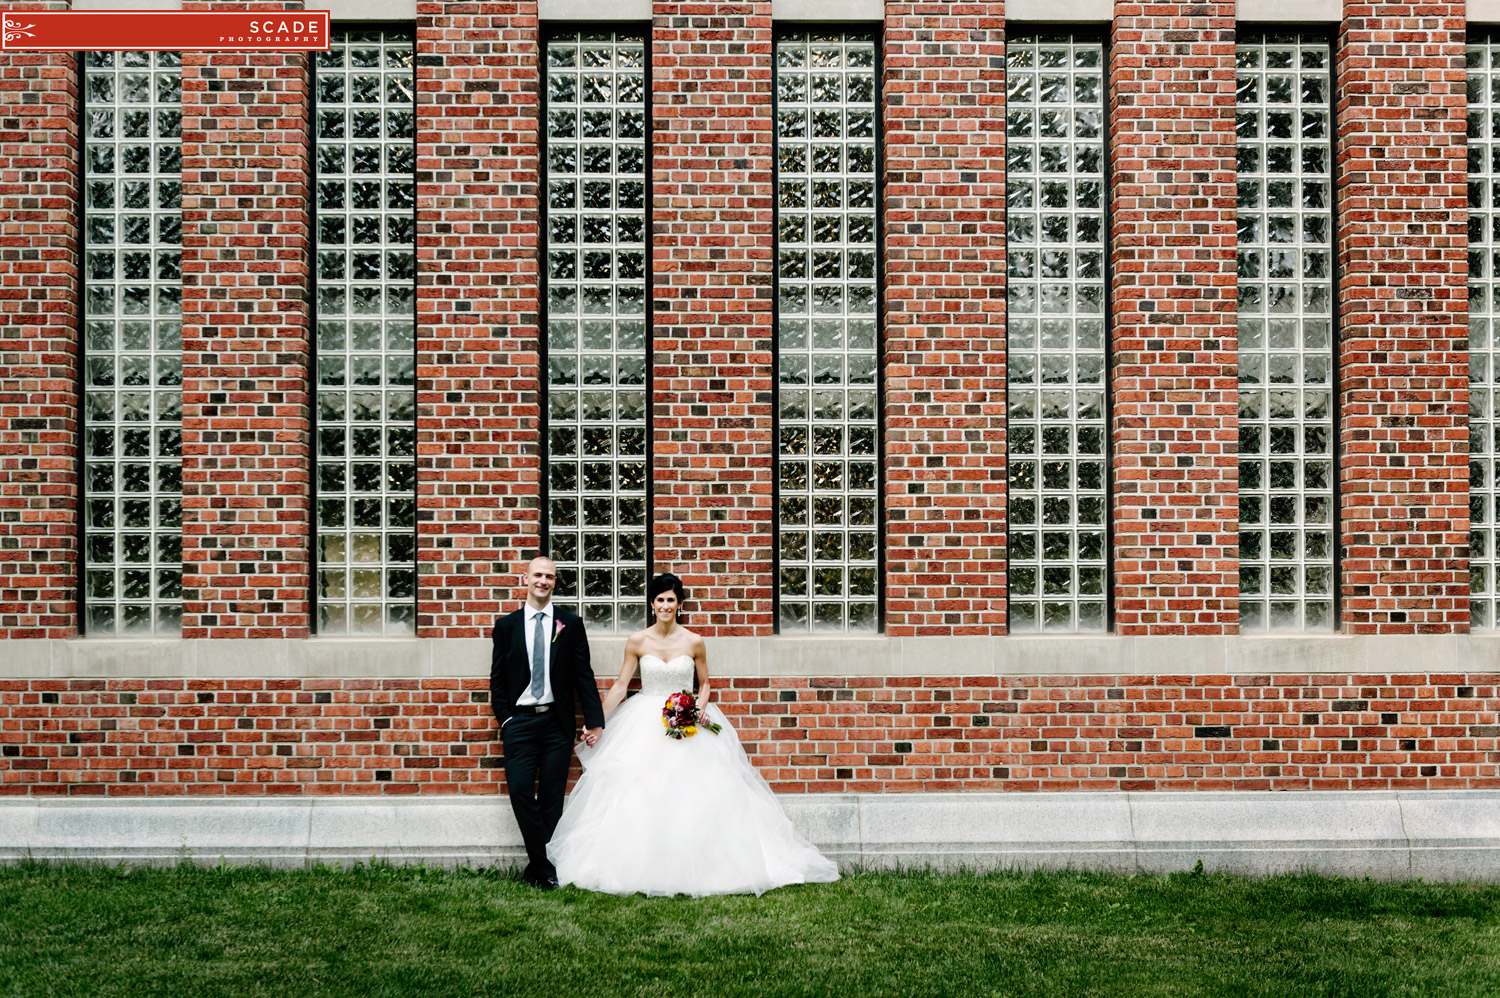 Sorrentinos Edmonton Wedding - Janel and Ben 0001.JPG